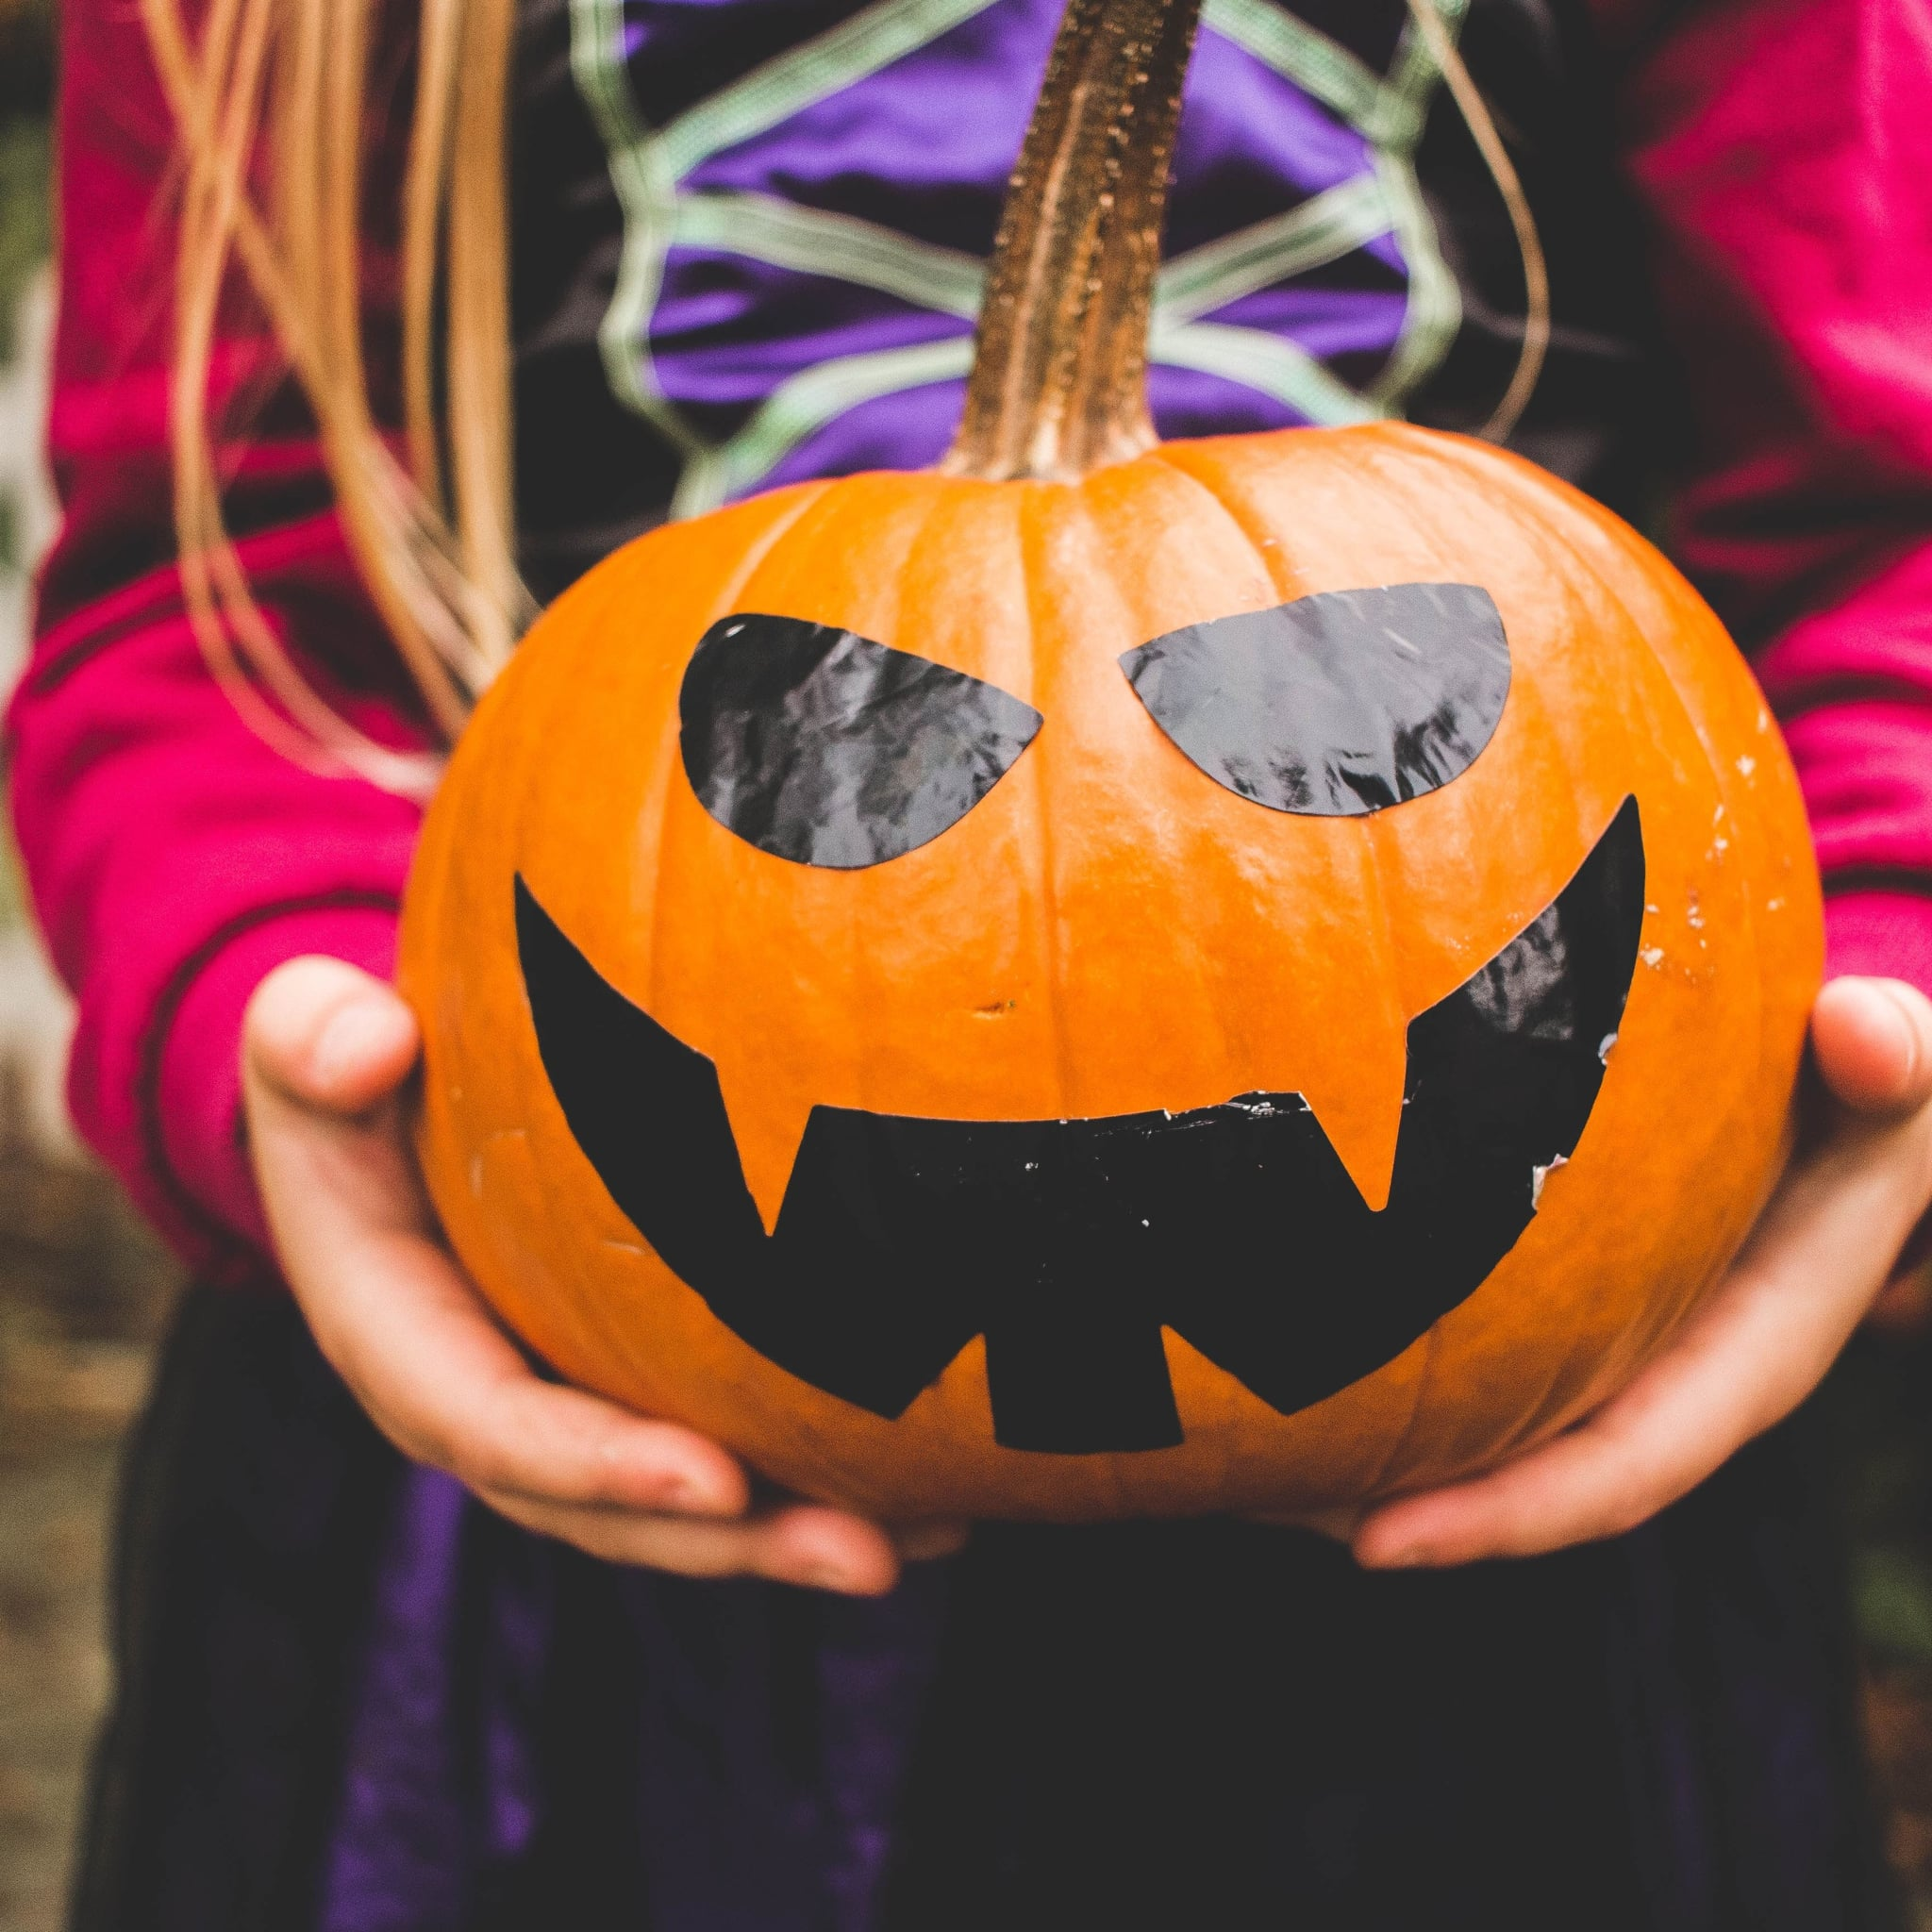 Spooky Halloween Games To Play With Kids Popsugar Family